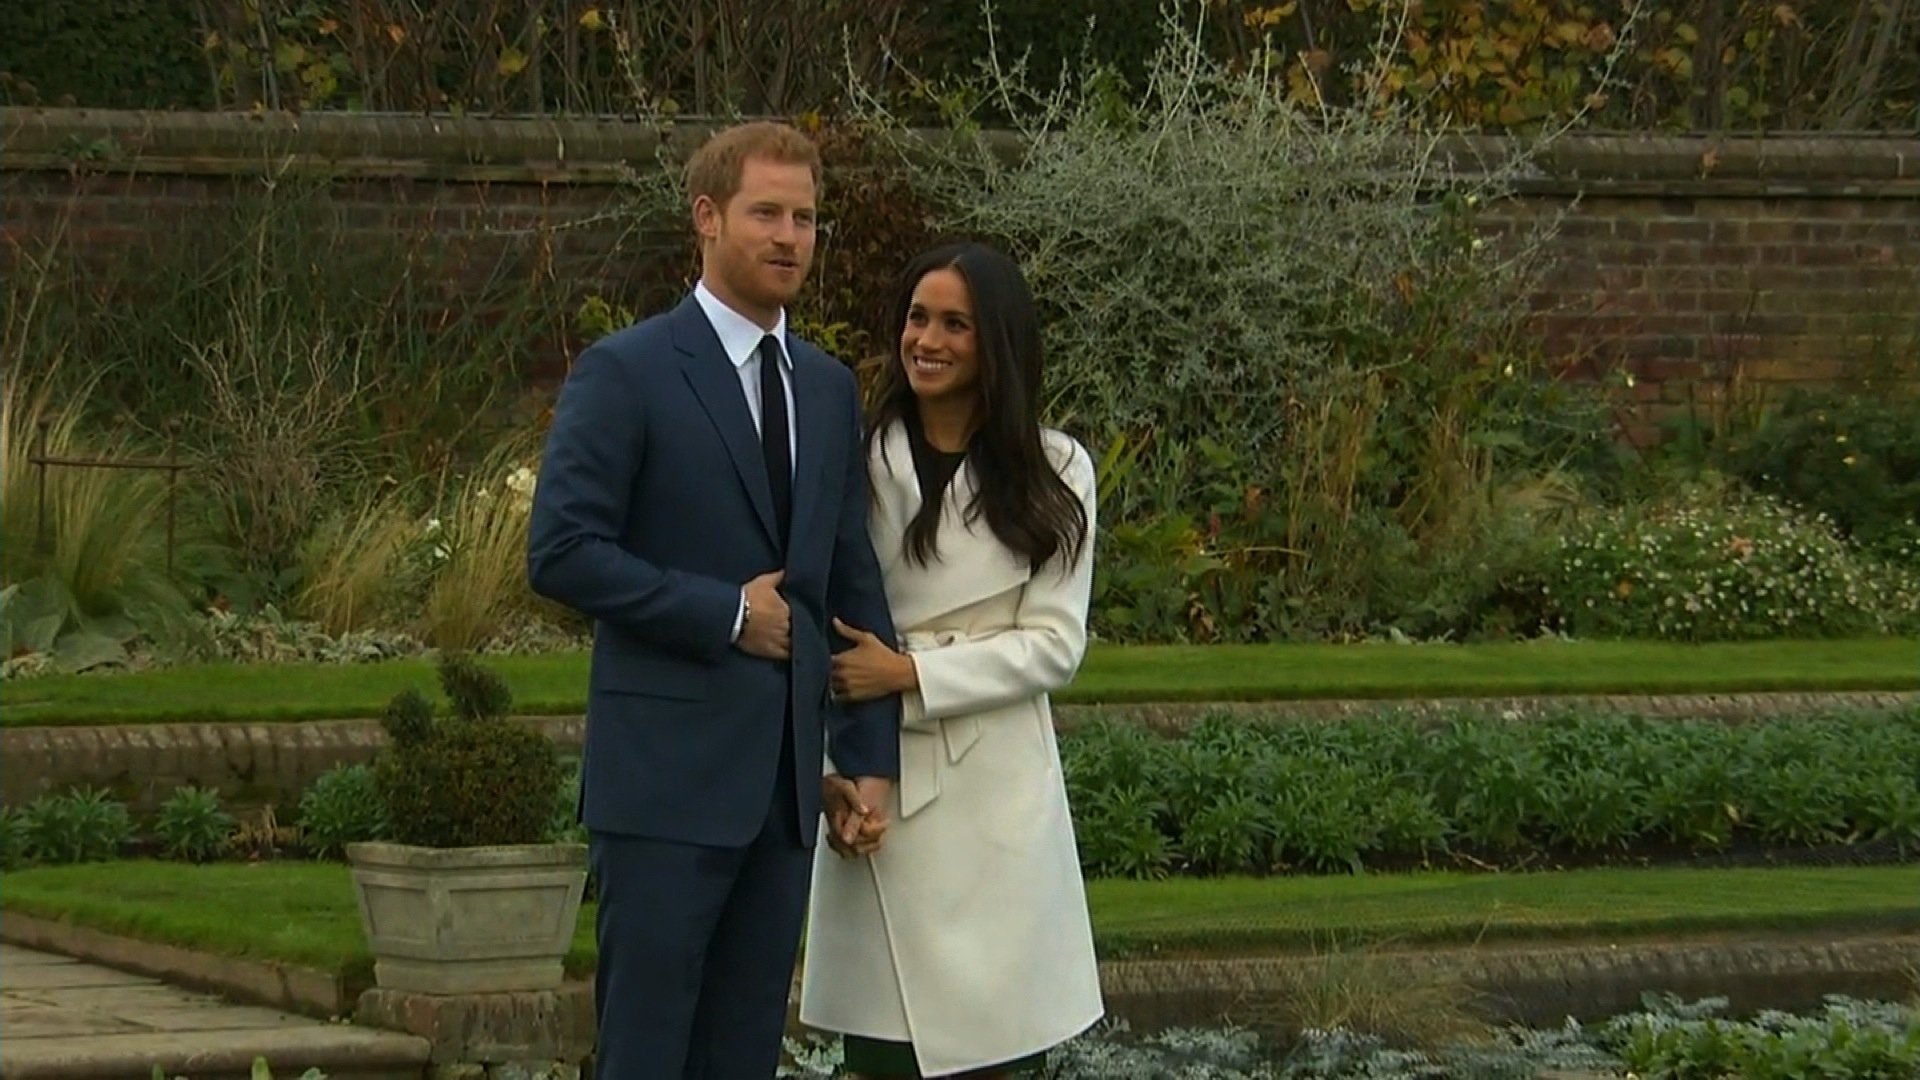 Prince Harry and Meghan Markle seen here in 2017 annoucing their engagement. (File Photo)